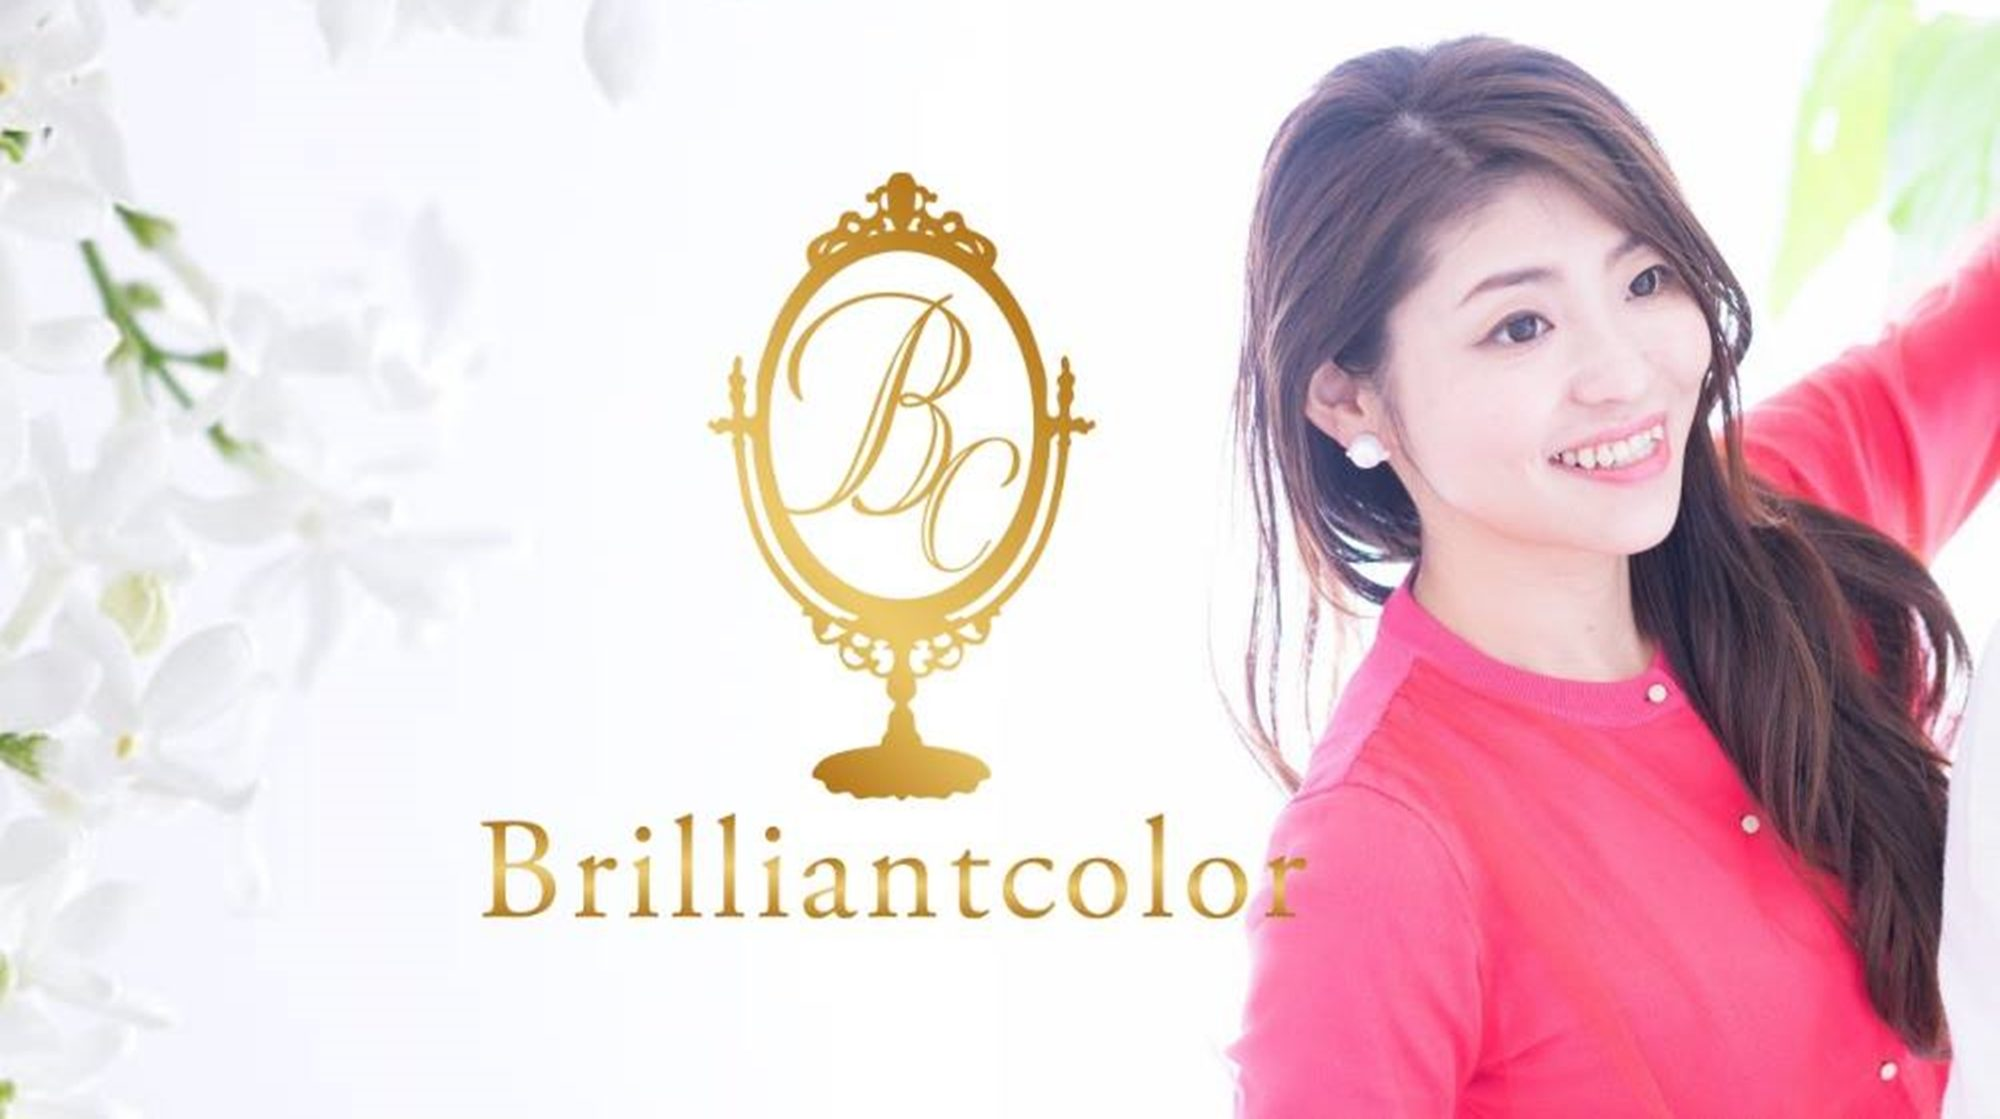 Brilliantcolor